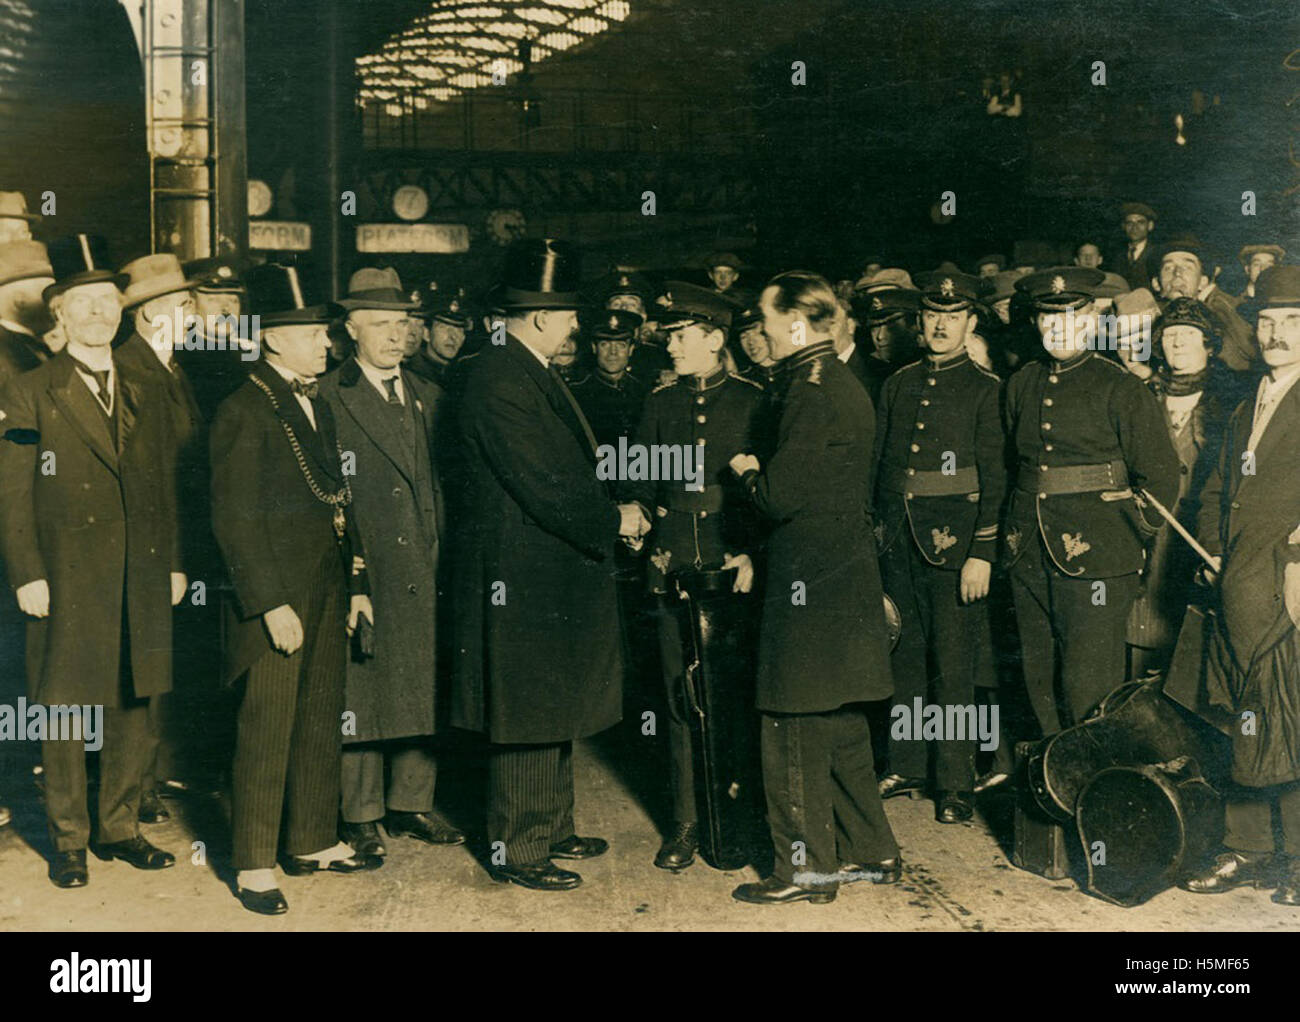 Greeting members of Marsden Colliery Band - Stock Image